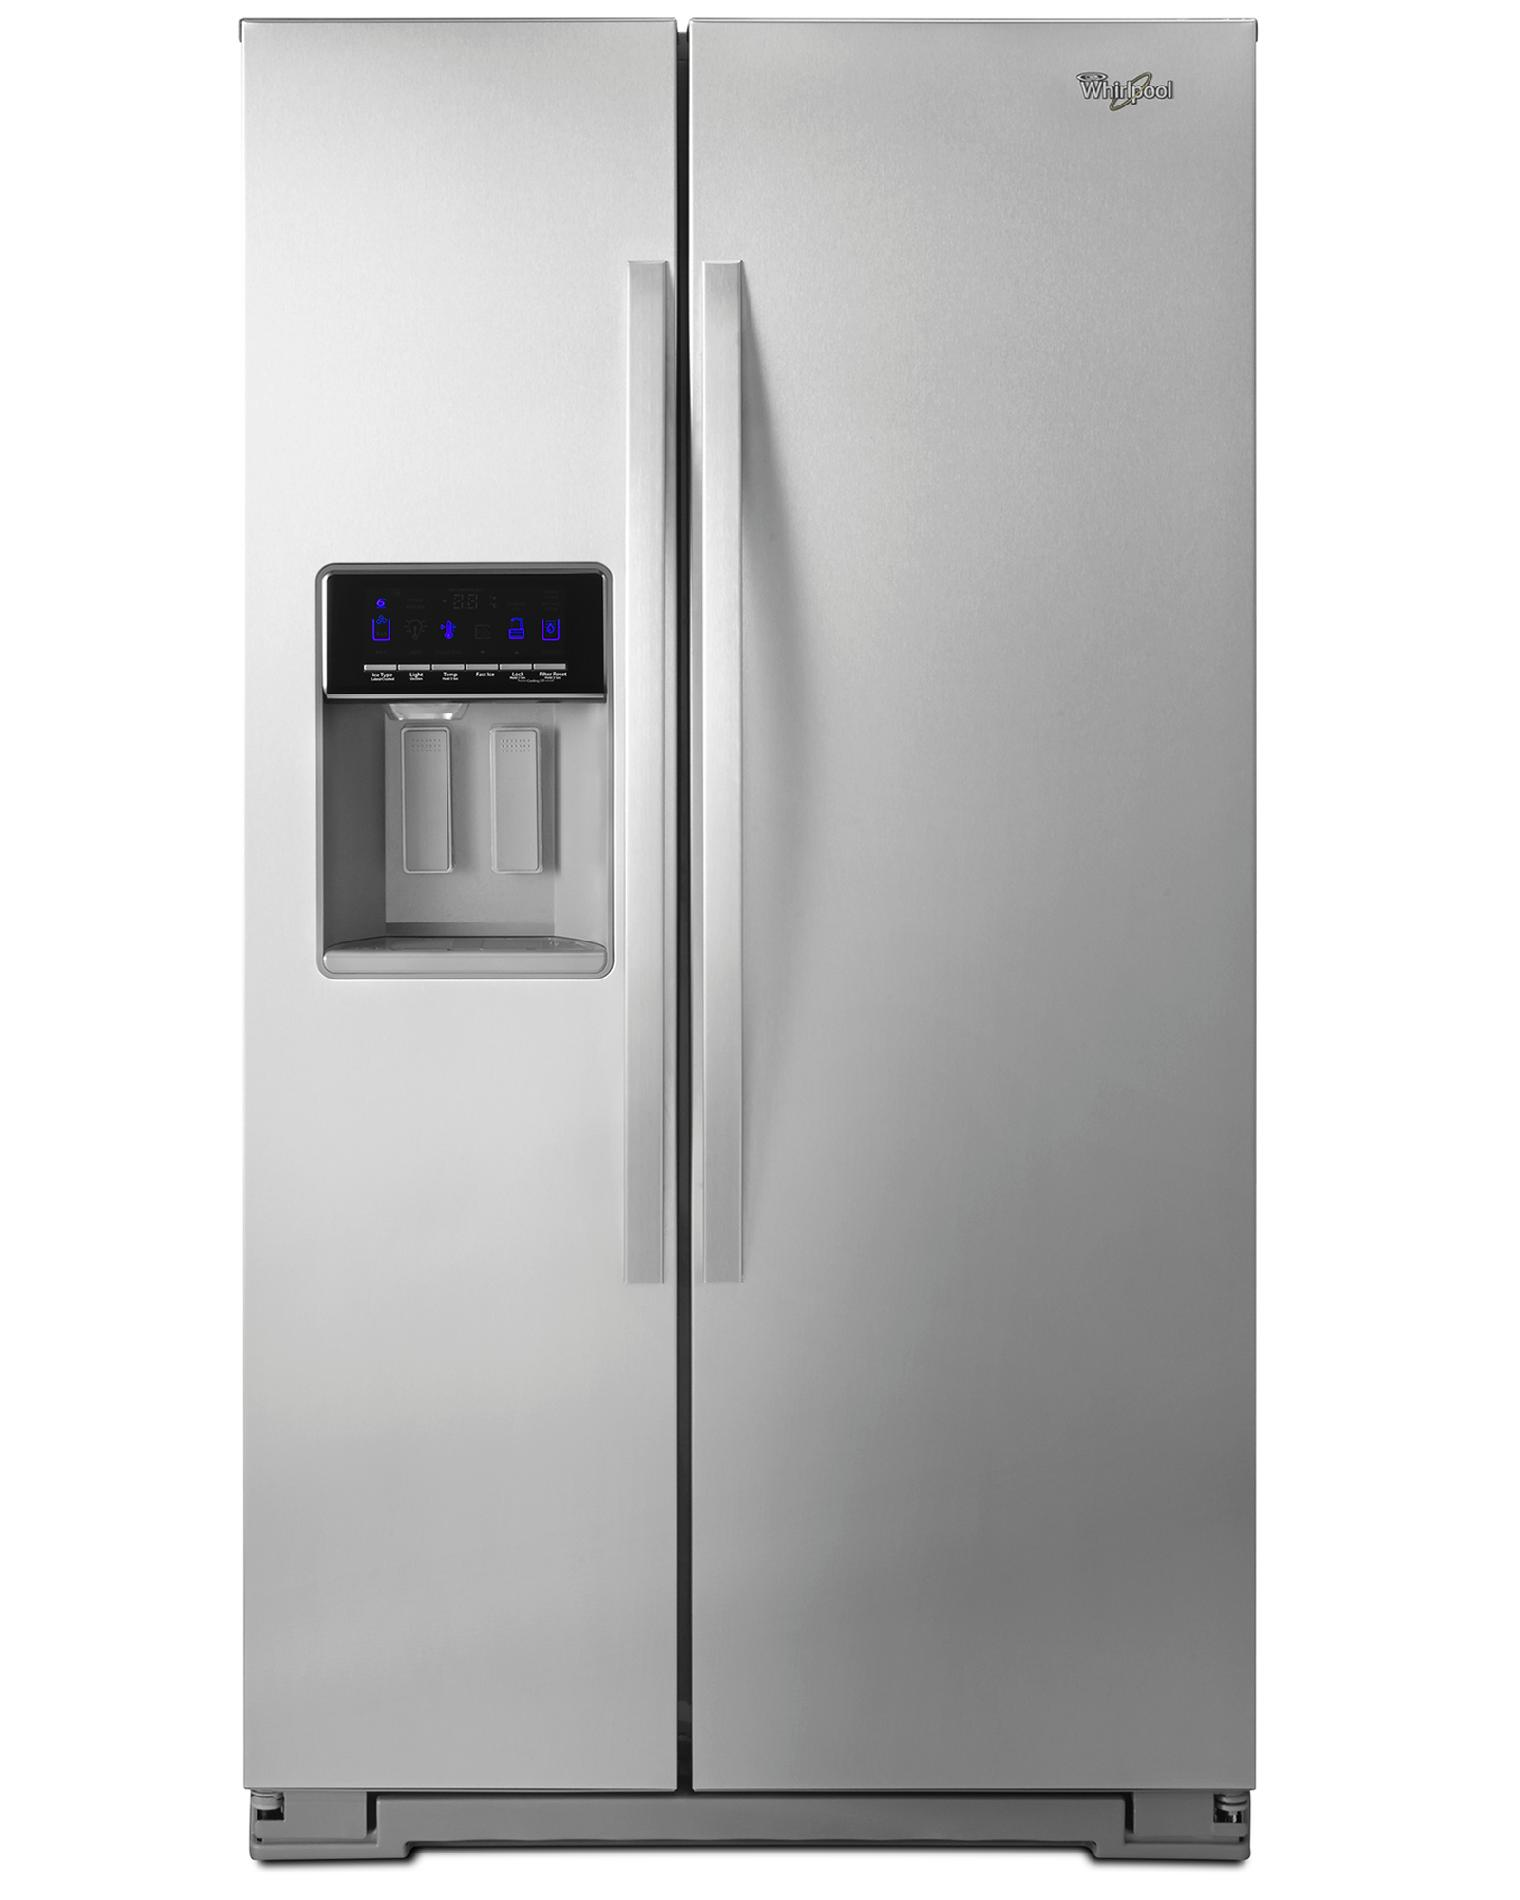 Wrs325sdhz Whirlpool 36 Side By Side Refrigerator Fingerprint